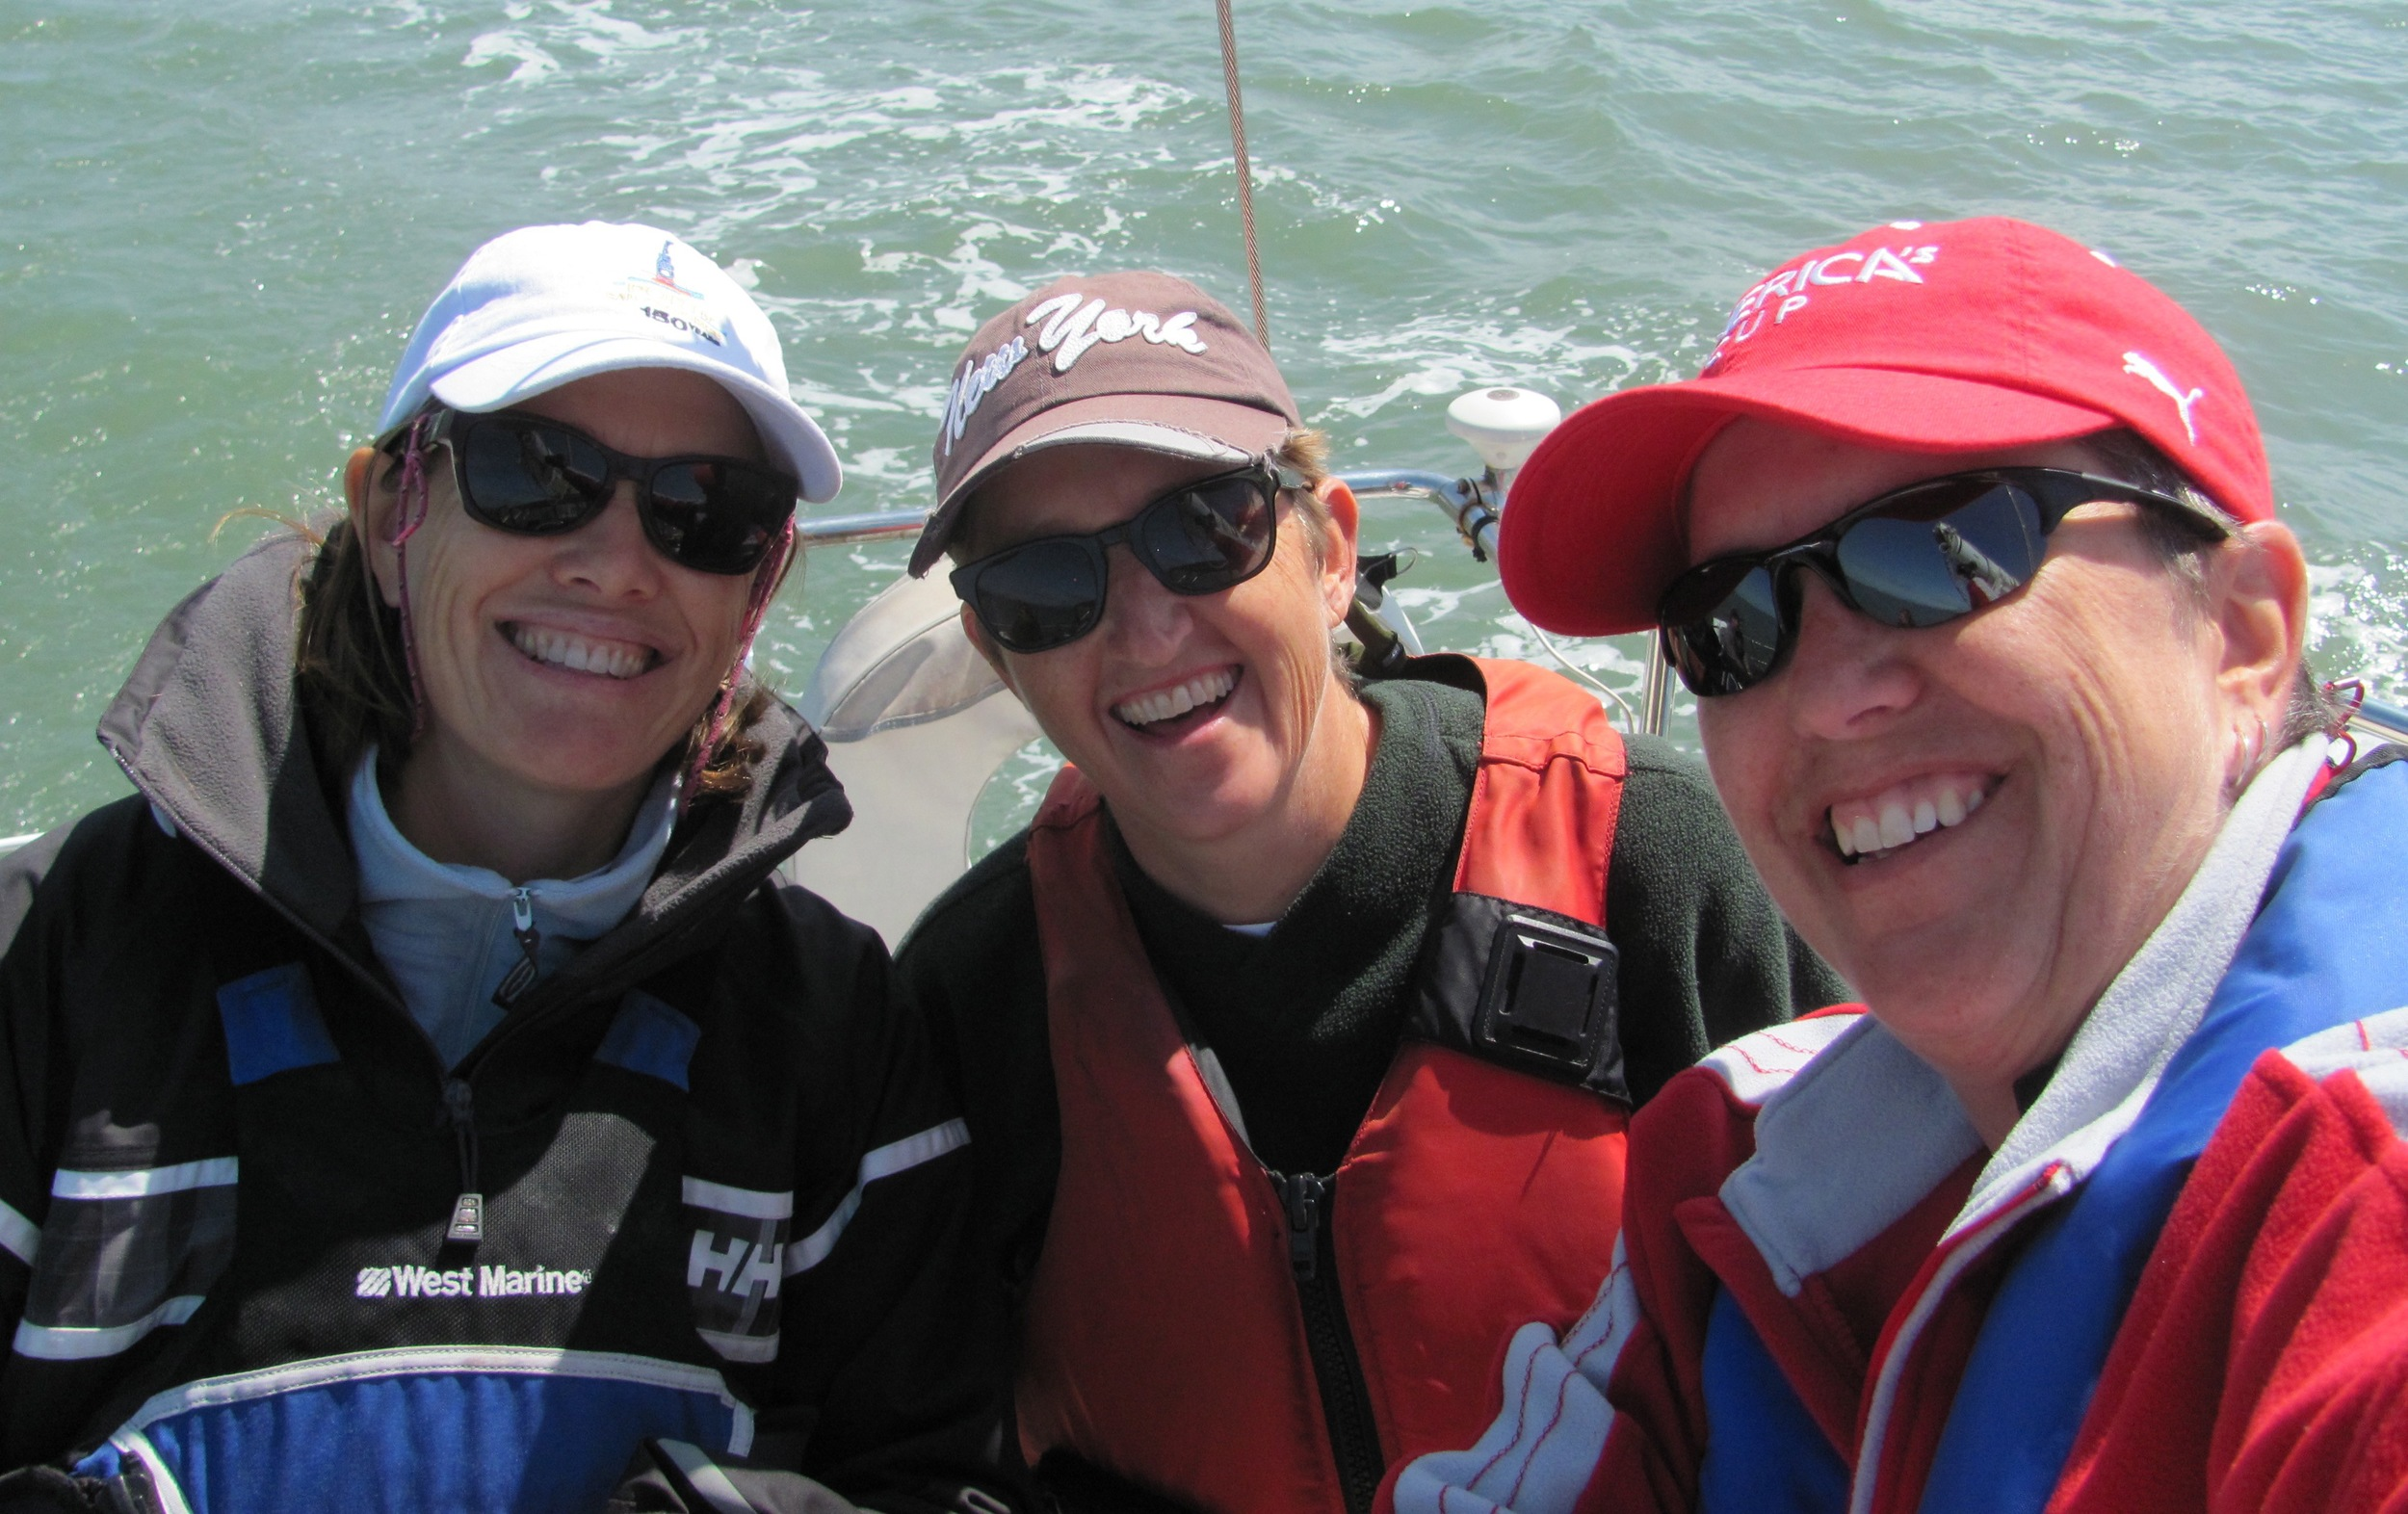 Original SFST members, coaches Jan Crosbie-Taylor and Sallie Lang and current team coordinator Heather Stewart still sailing together 13 years later!